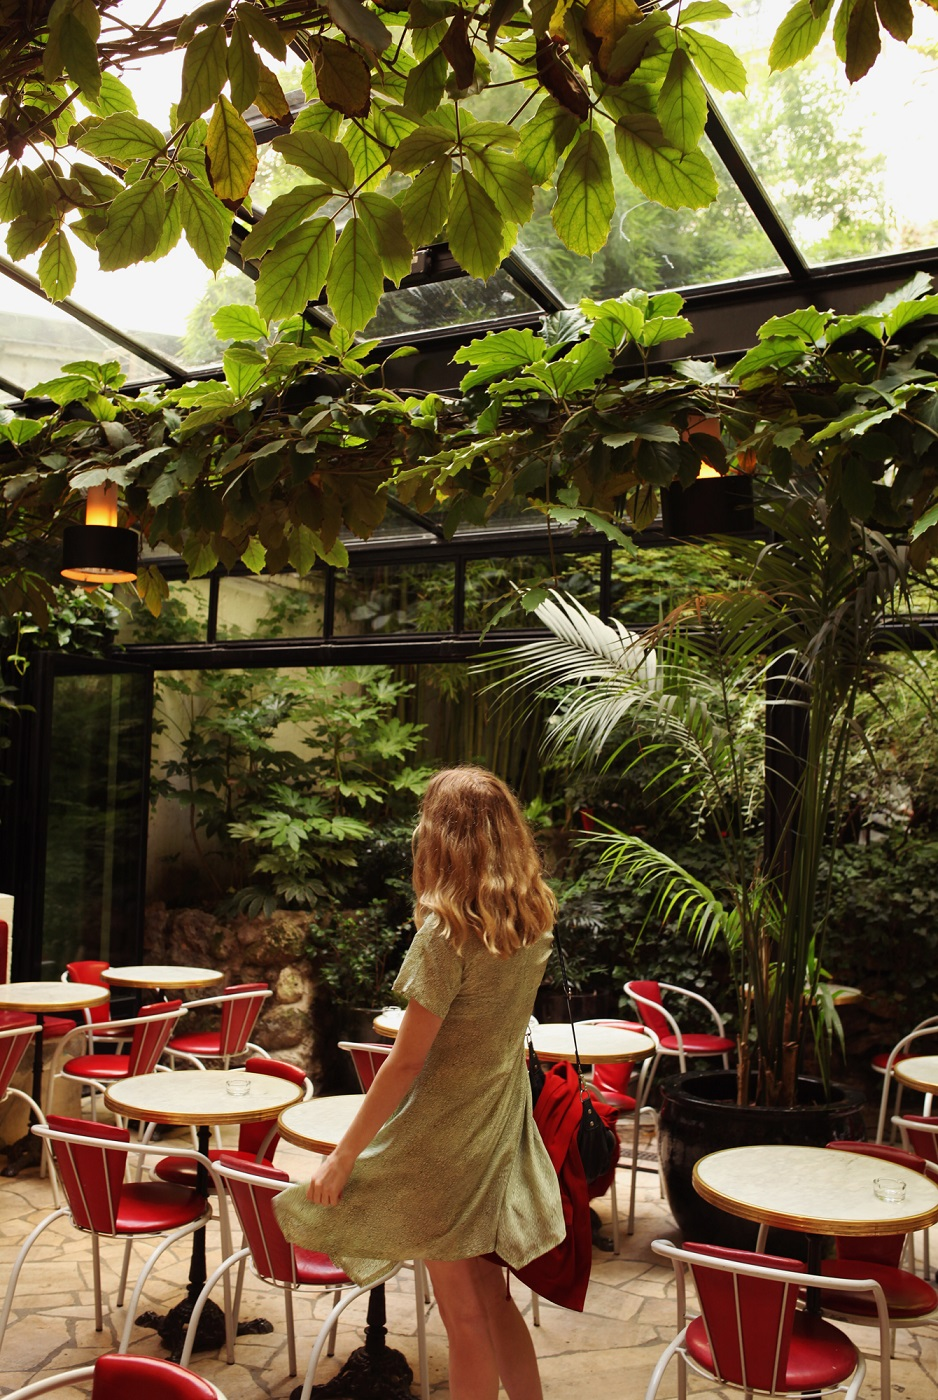 Romantic Things to Do in Paris - Hide Away At Hotel Amour